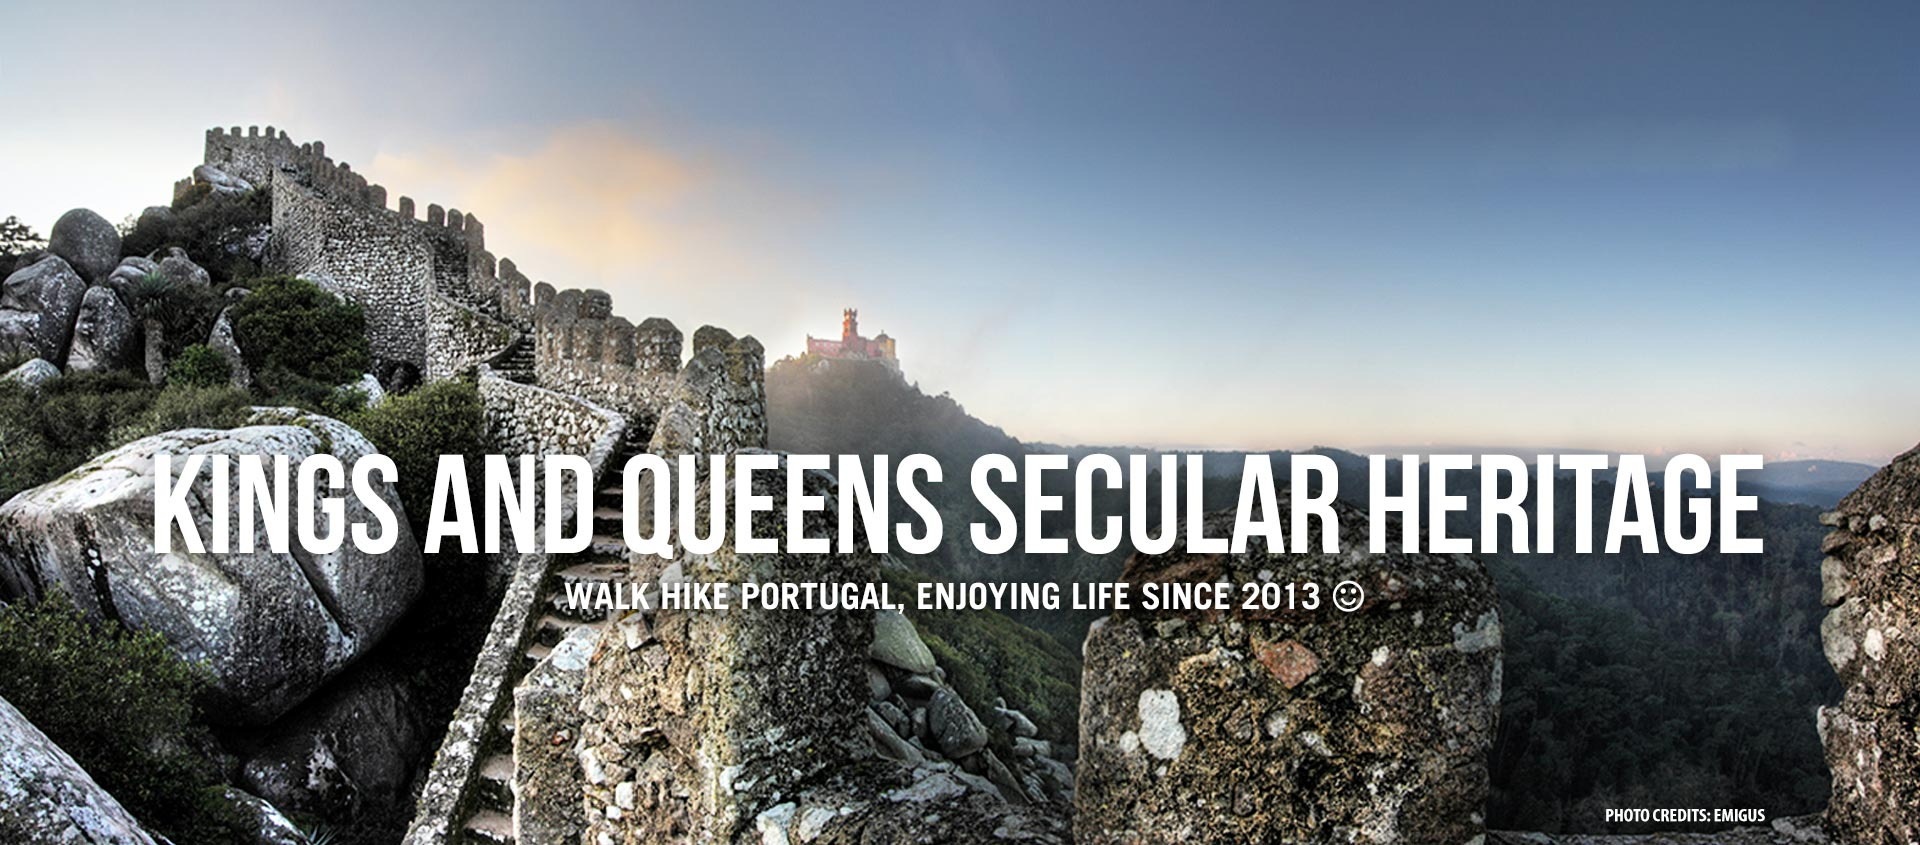 KINGS AND QUEENS SECULAR HERITAGE